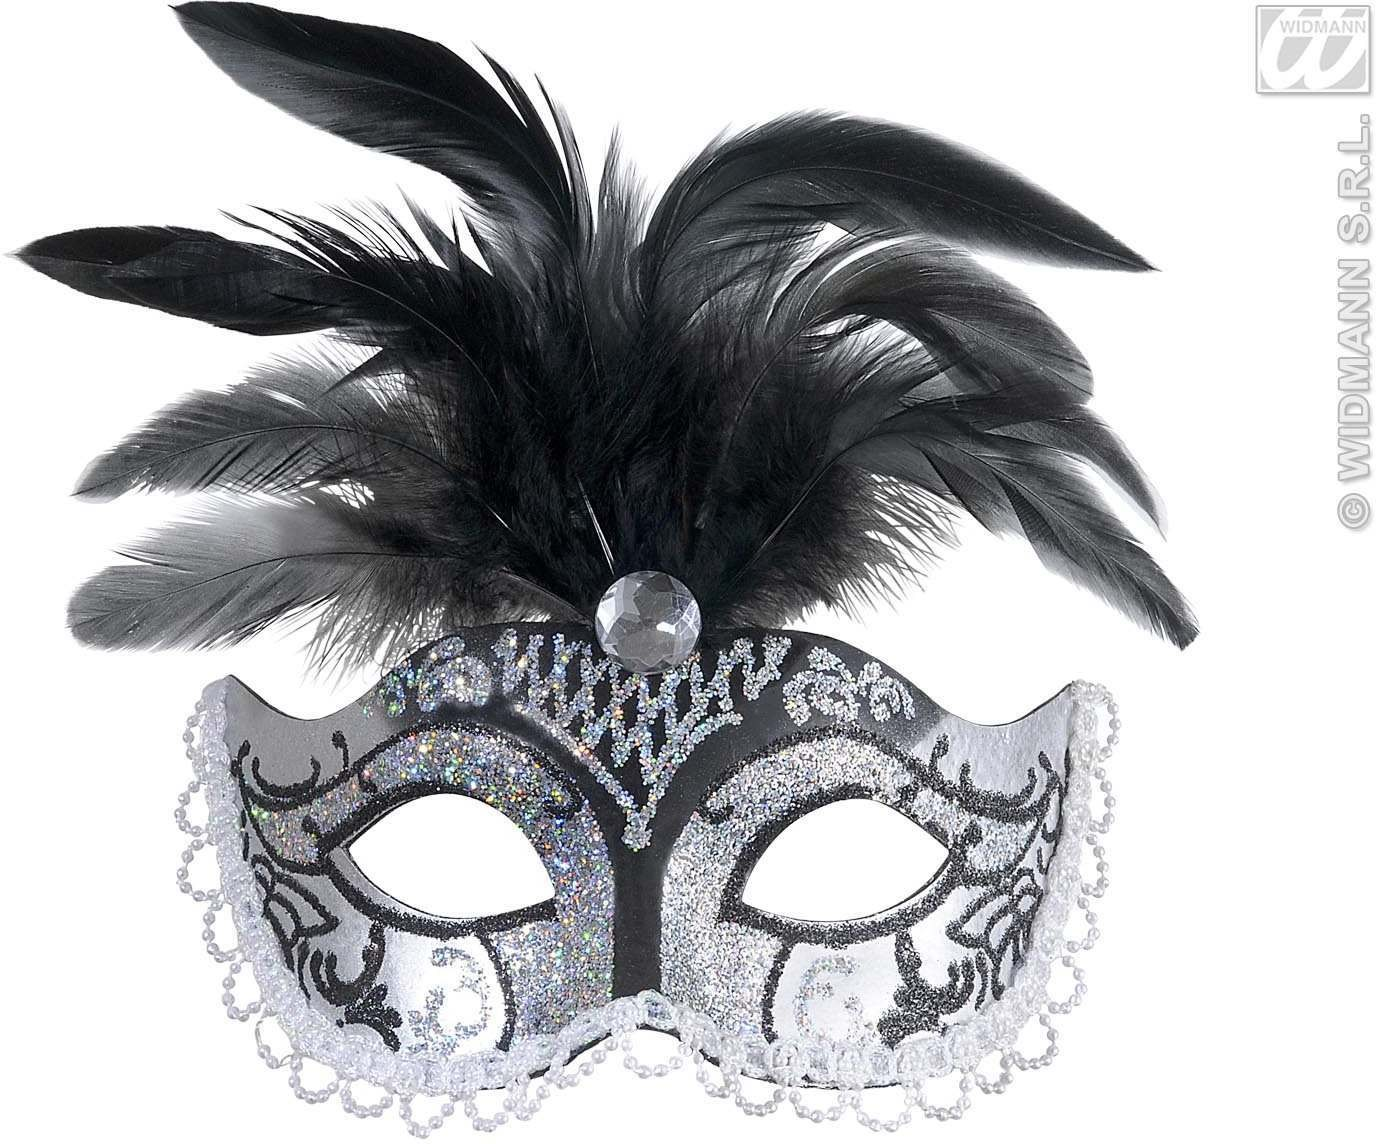 Silver, Black Glitt Eyemask +Gem + Feathers Fancy Dress